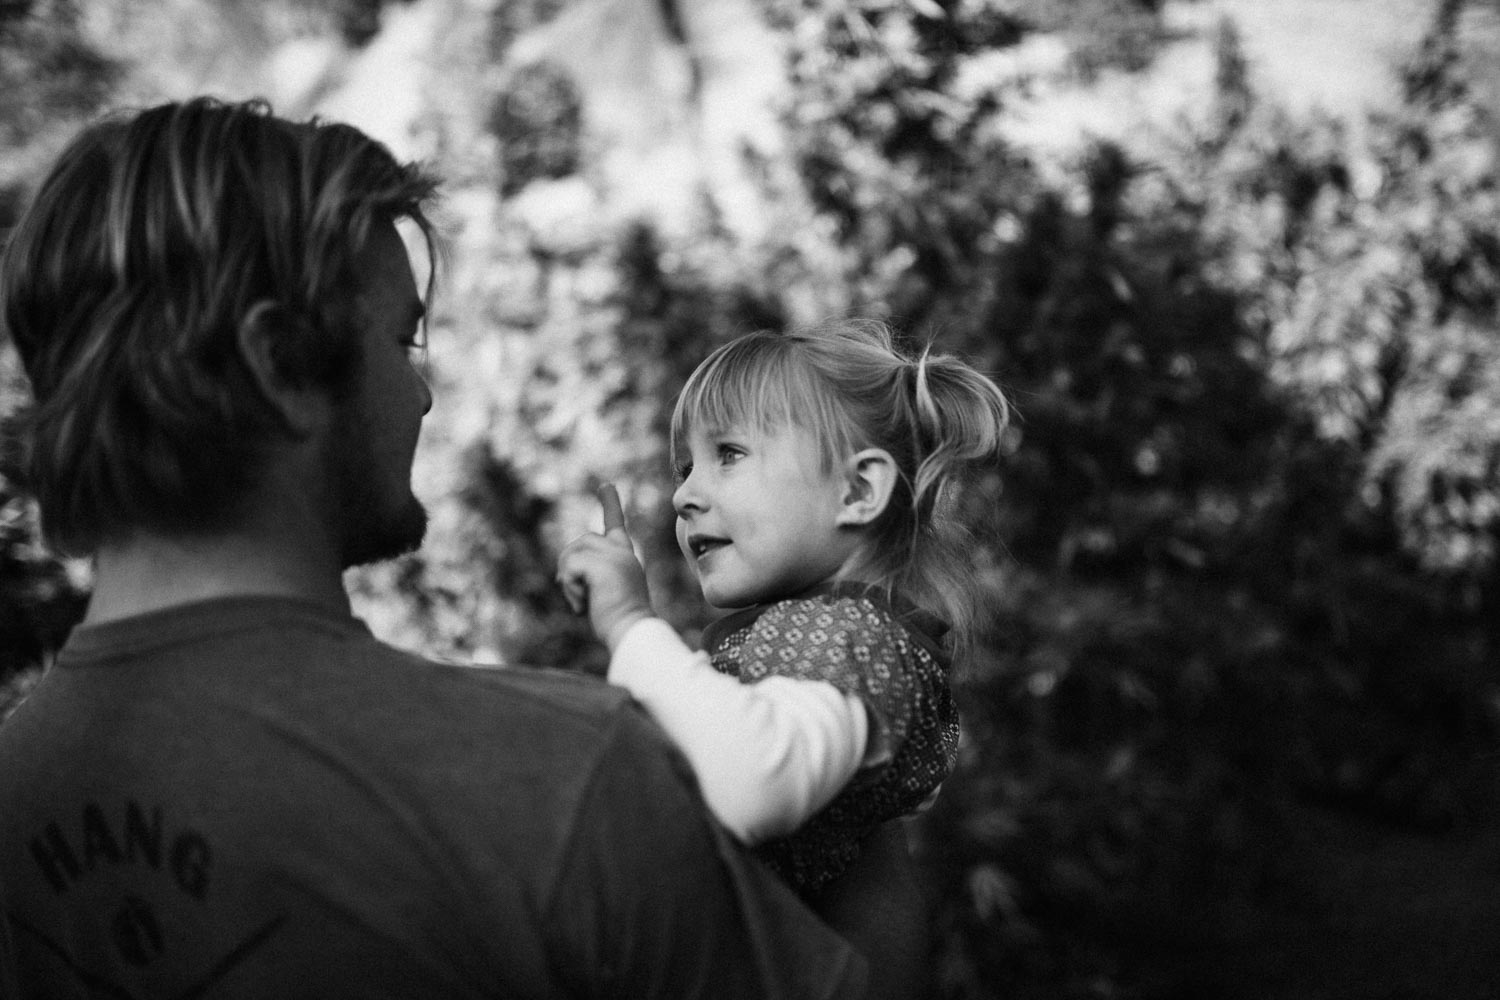 candid-black-and-white-photo-of-boy-holding-and-talking-to-girl-on-weed-farm-during-in-home-session-with-jen-fairchild-photography-benbow-ca